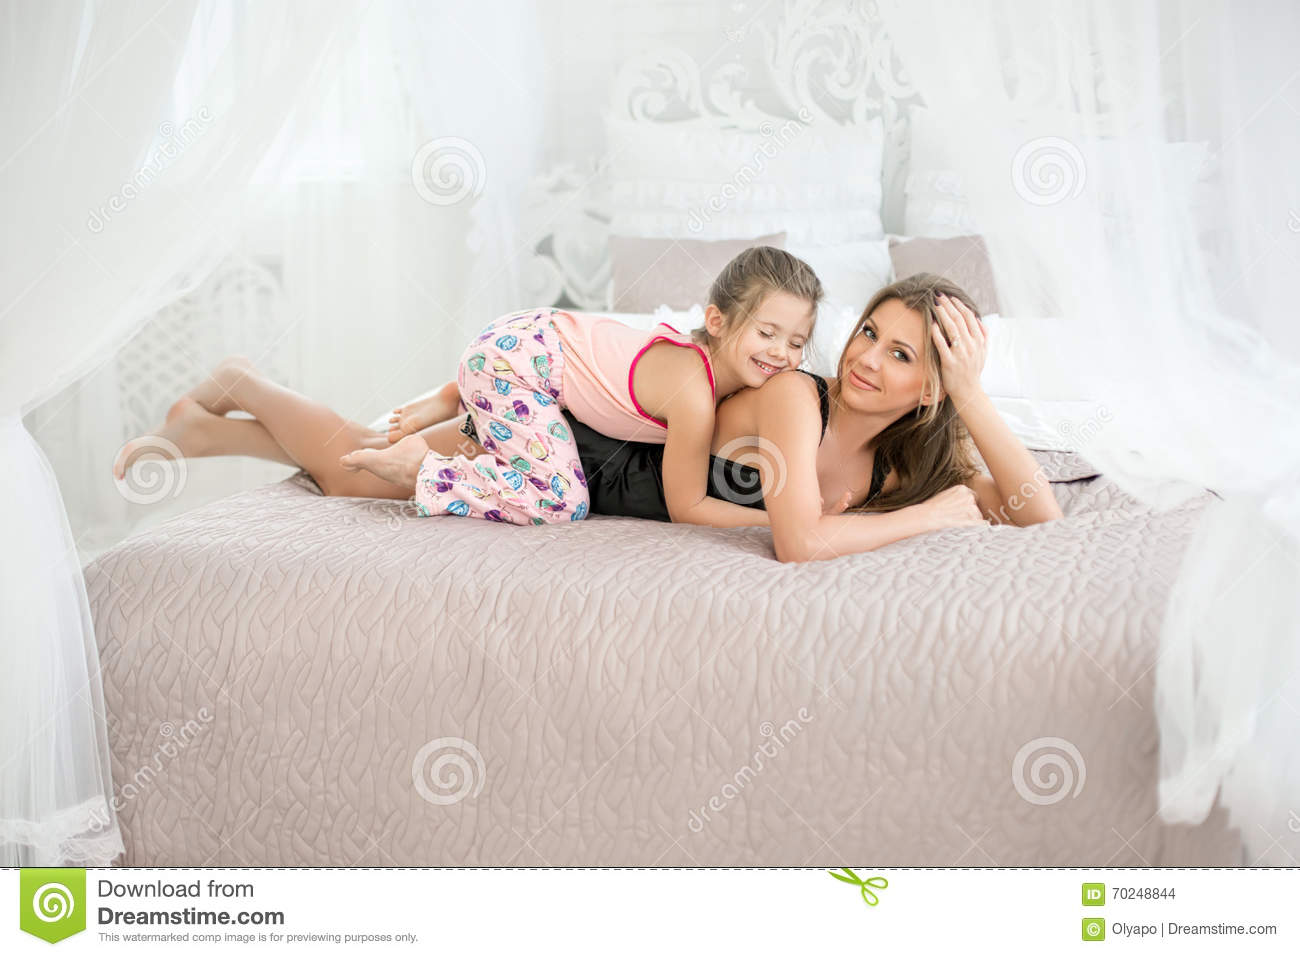 MILF and doughter on the bed